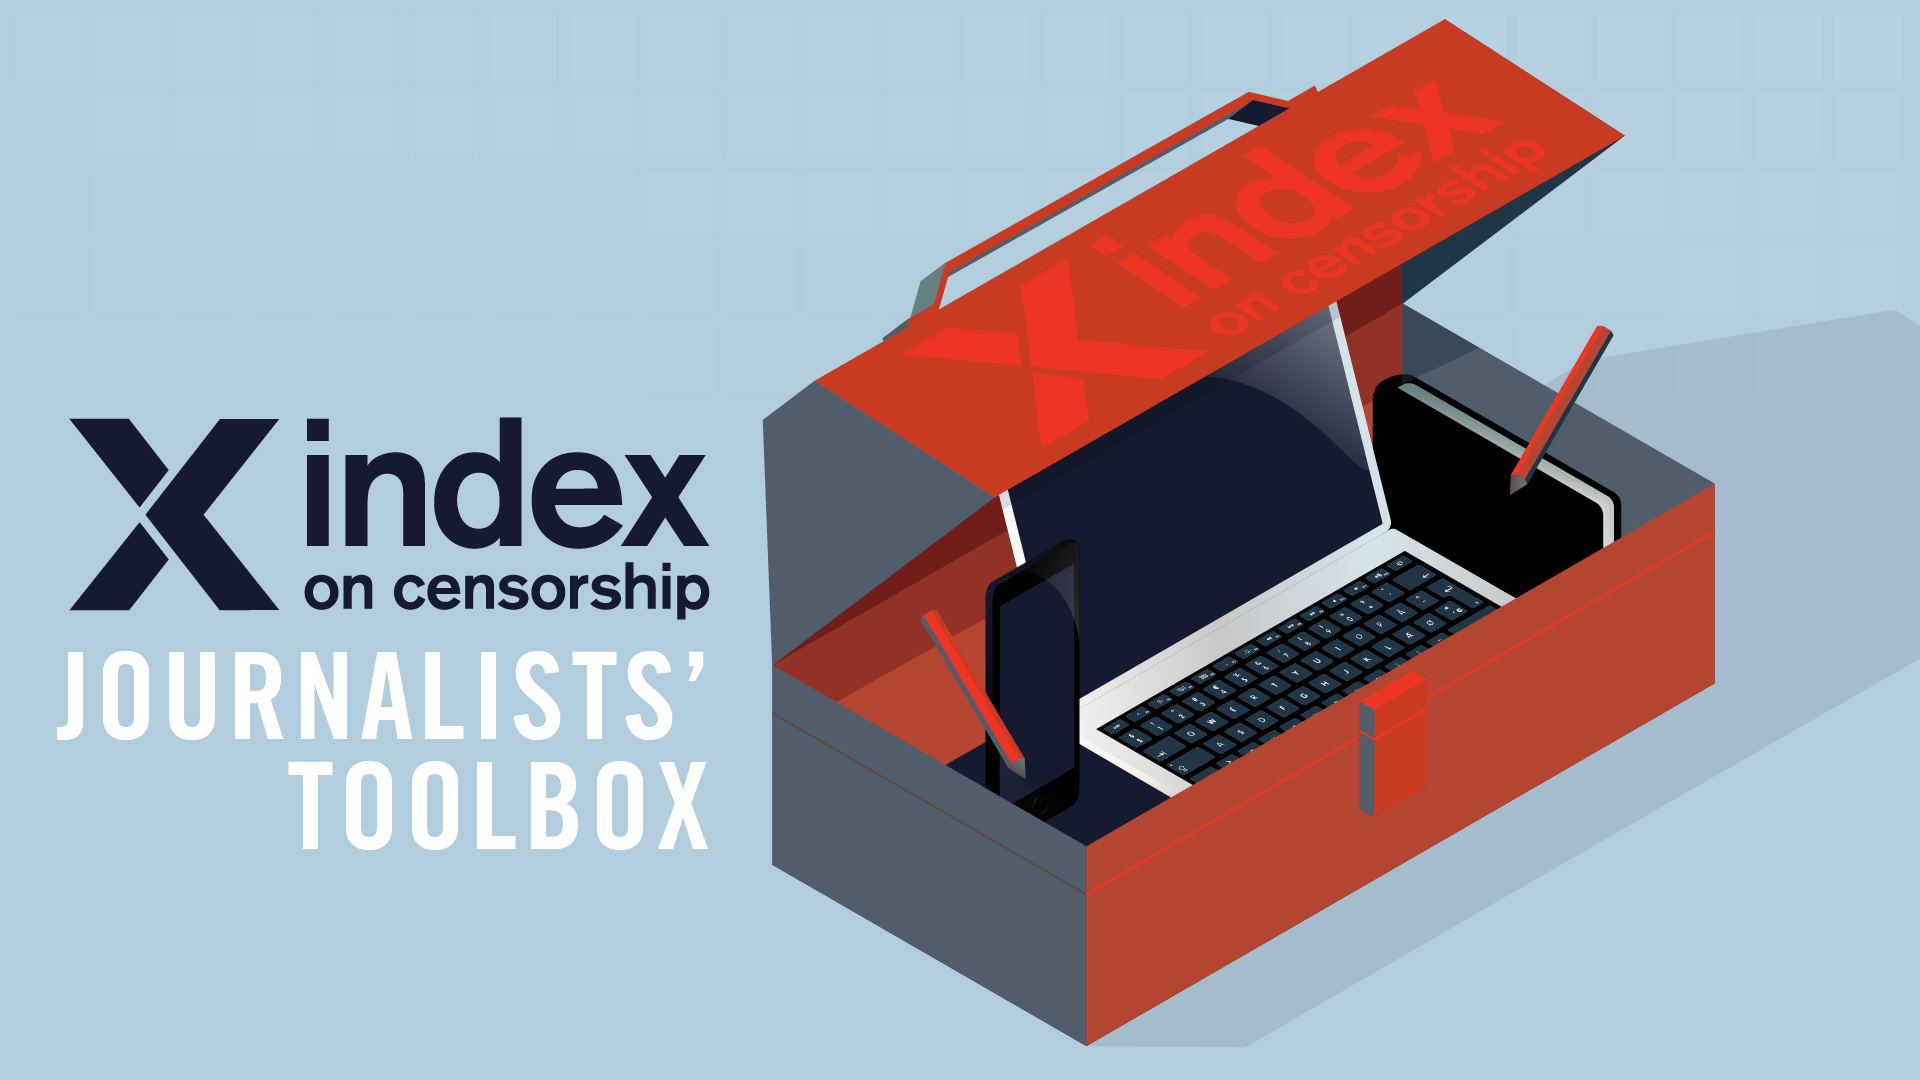 Cover for: A new, multi-lingual resource for journalists and readers from 'Index on Censorship'